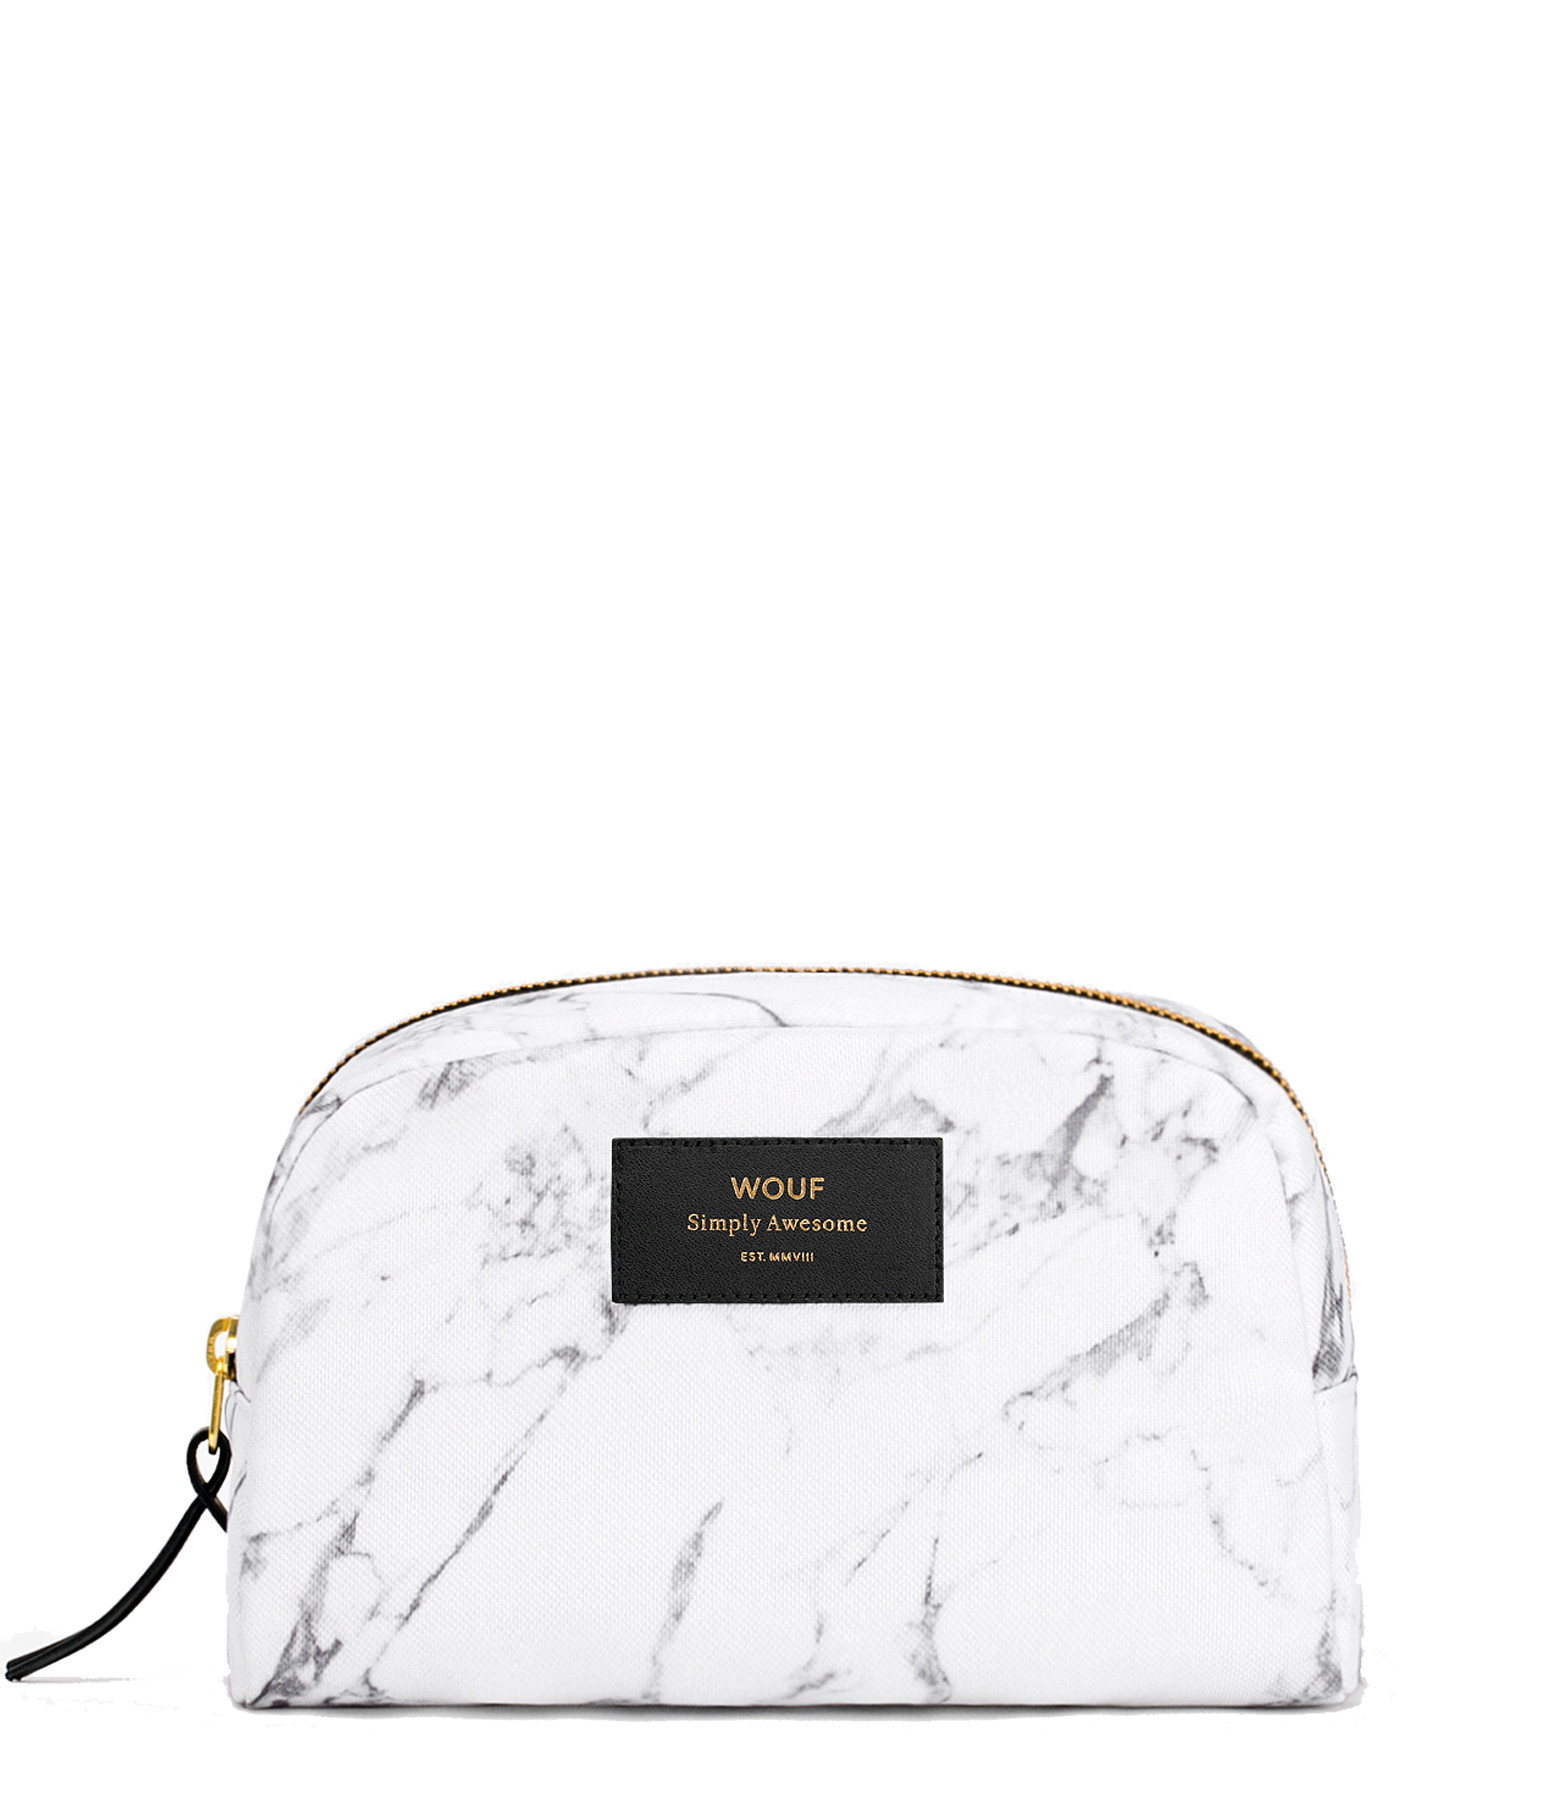 WOUF - Trousse Big Beauty White Marble